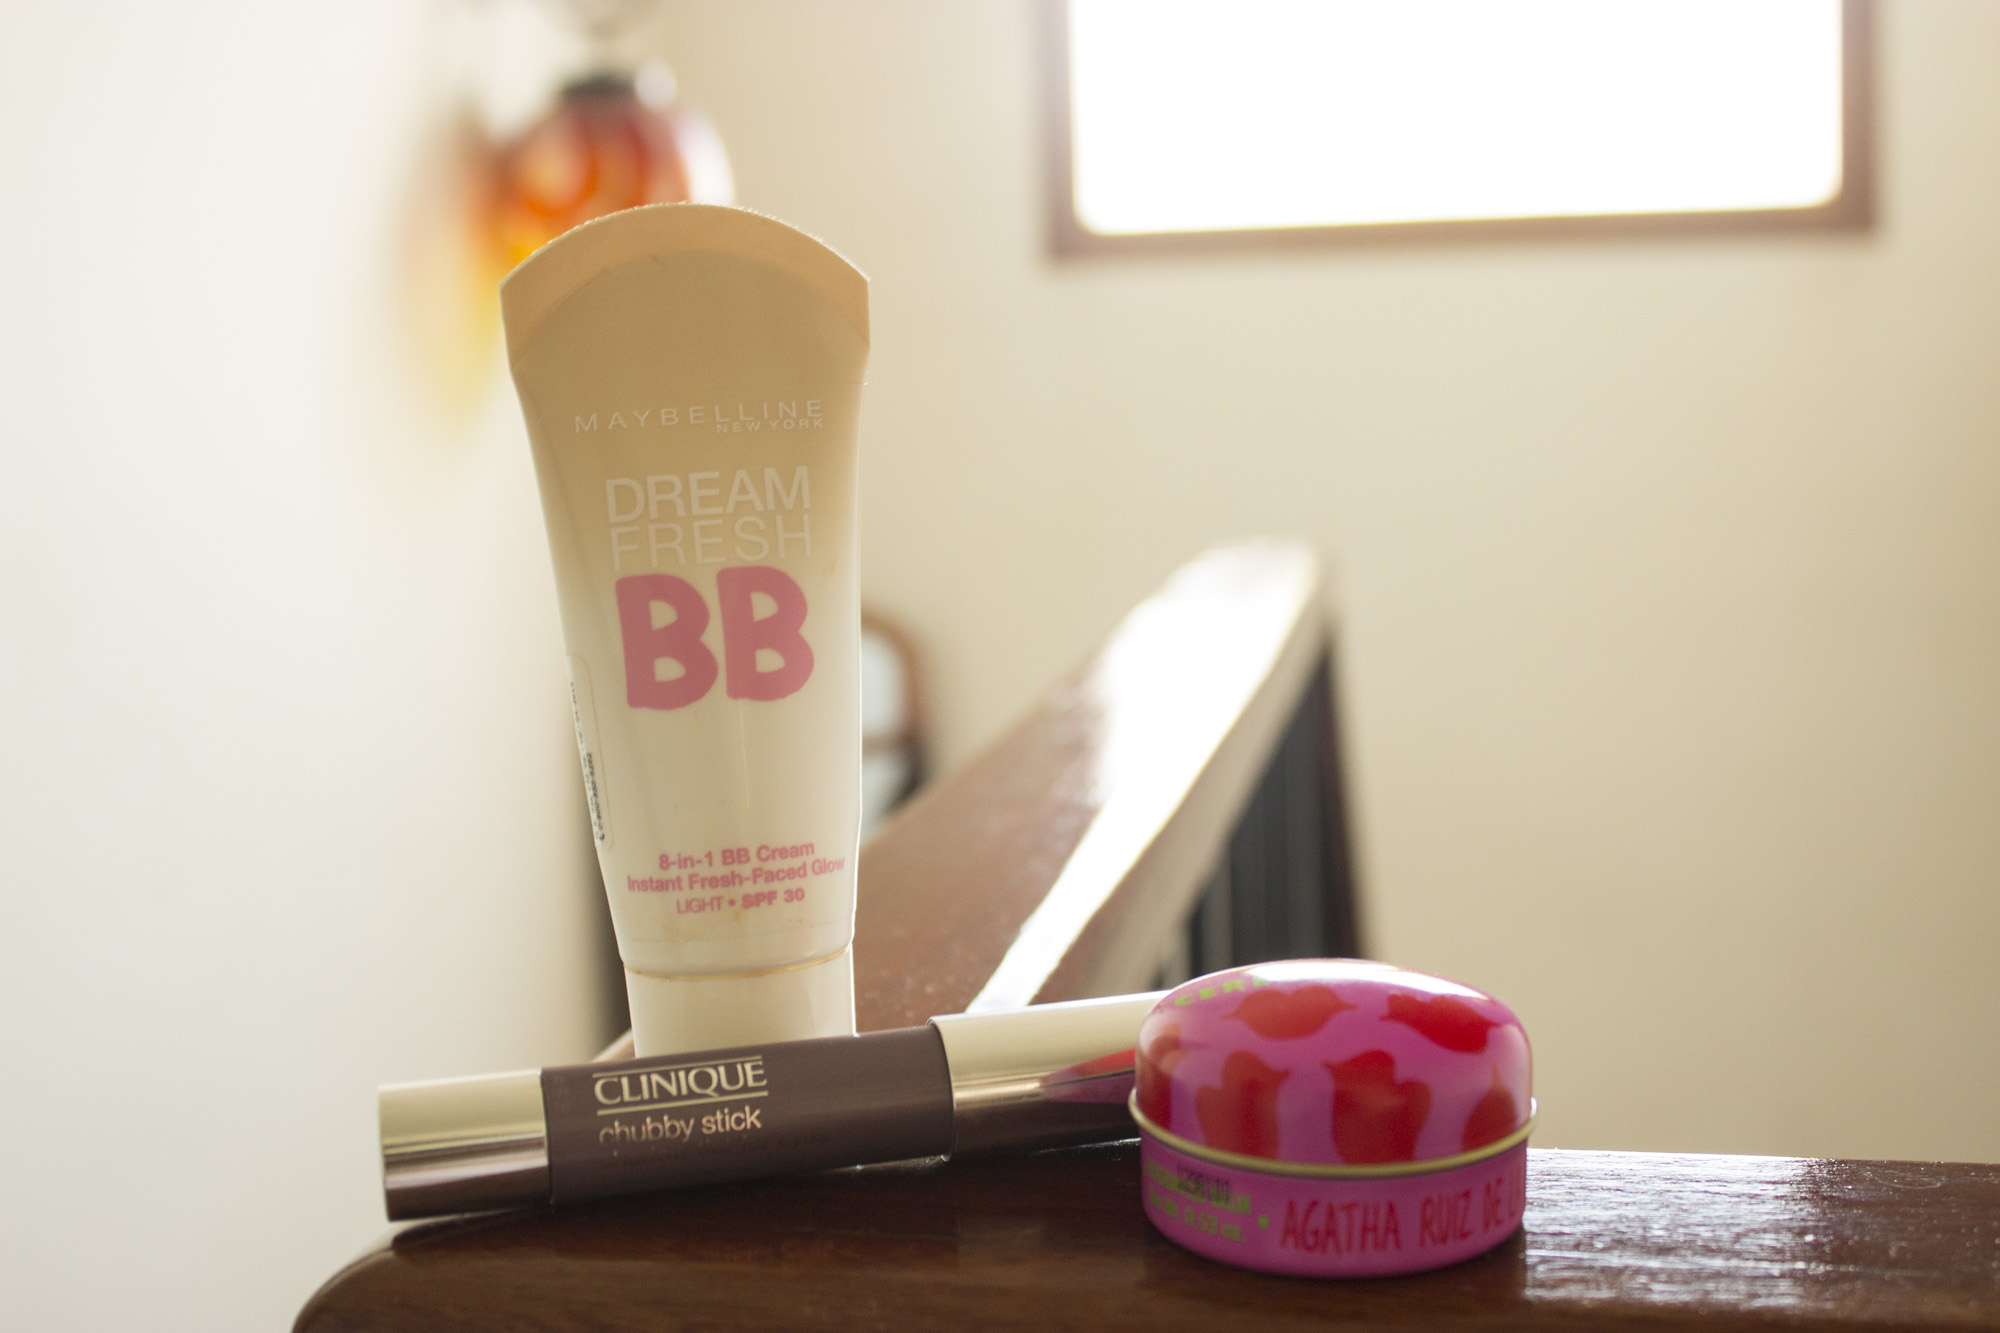 BB Cream Maybelline, Chubby Stick Clinique, Beauty des Levres Agatha Ruiz de la Prada